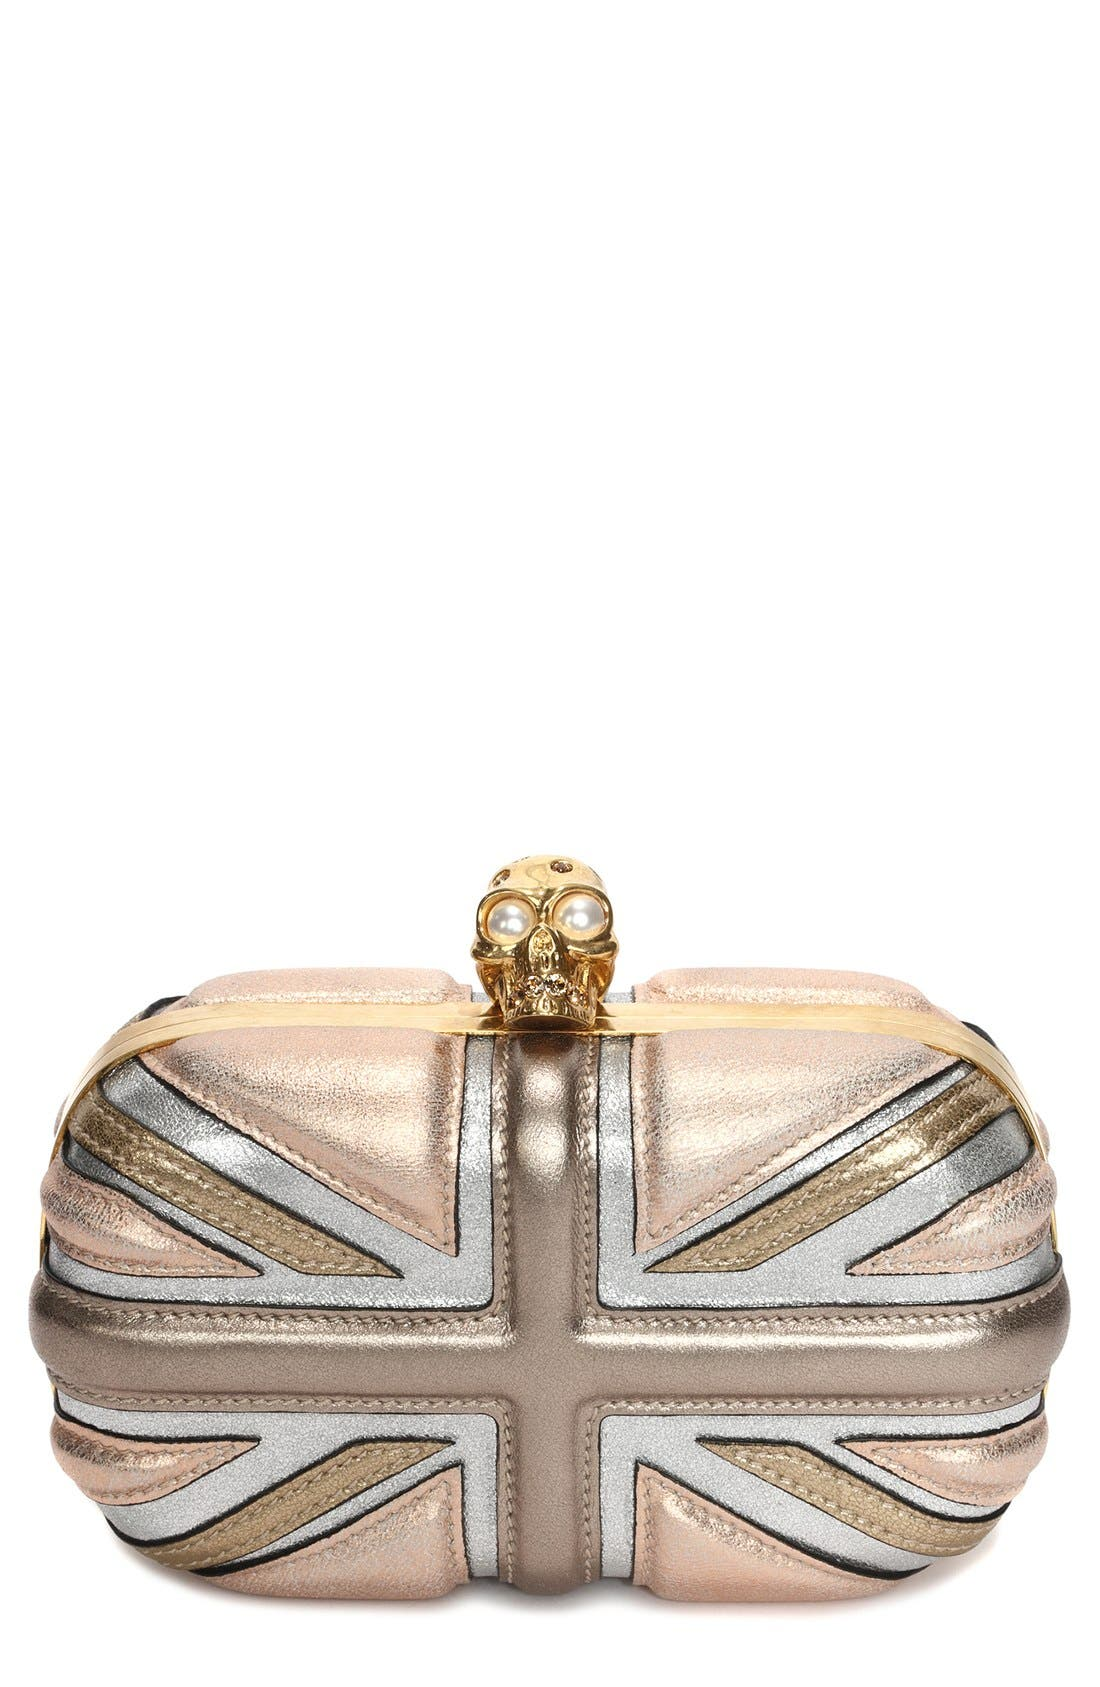 ALEXANDER MCQUEEN,                             'Britannia' Union Jack Box Clutch,                             Main thumbnail 1, color,                             710